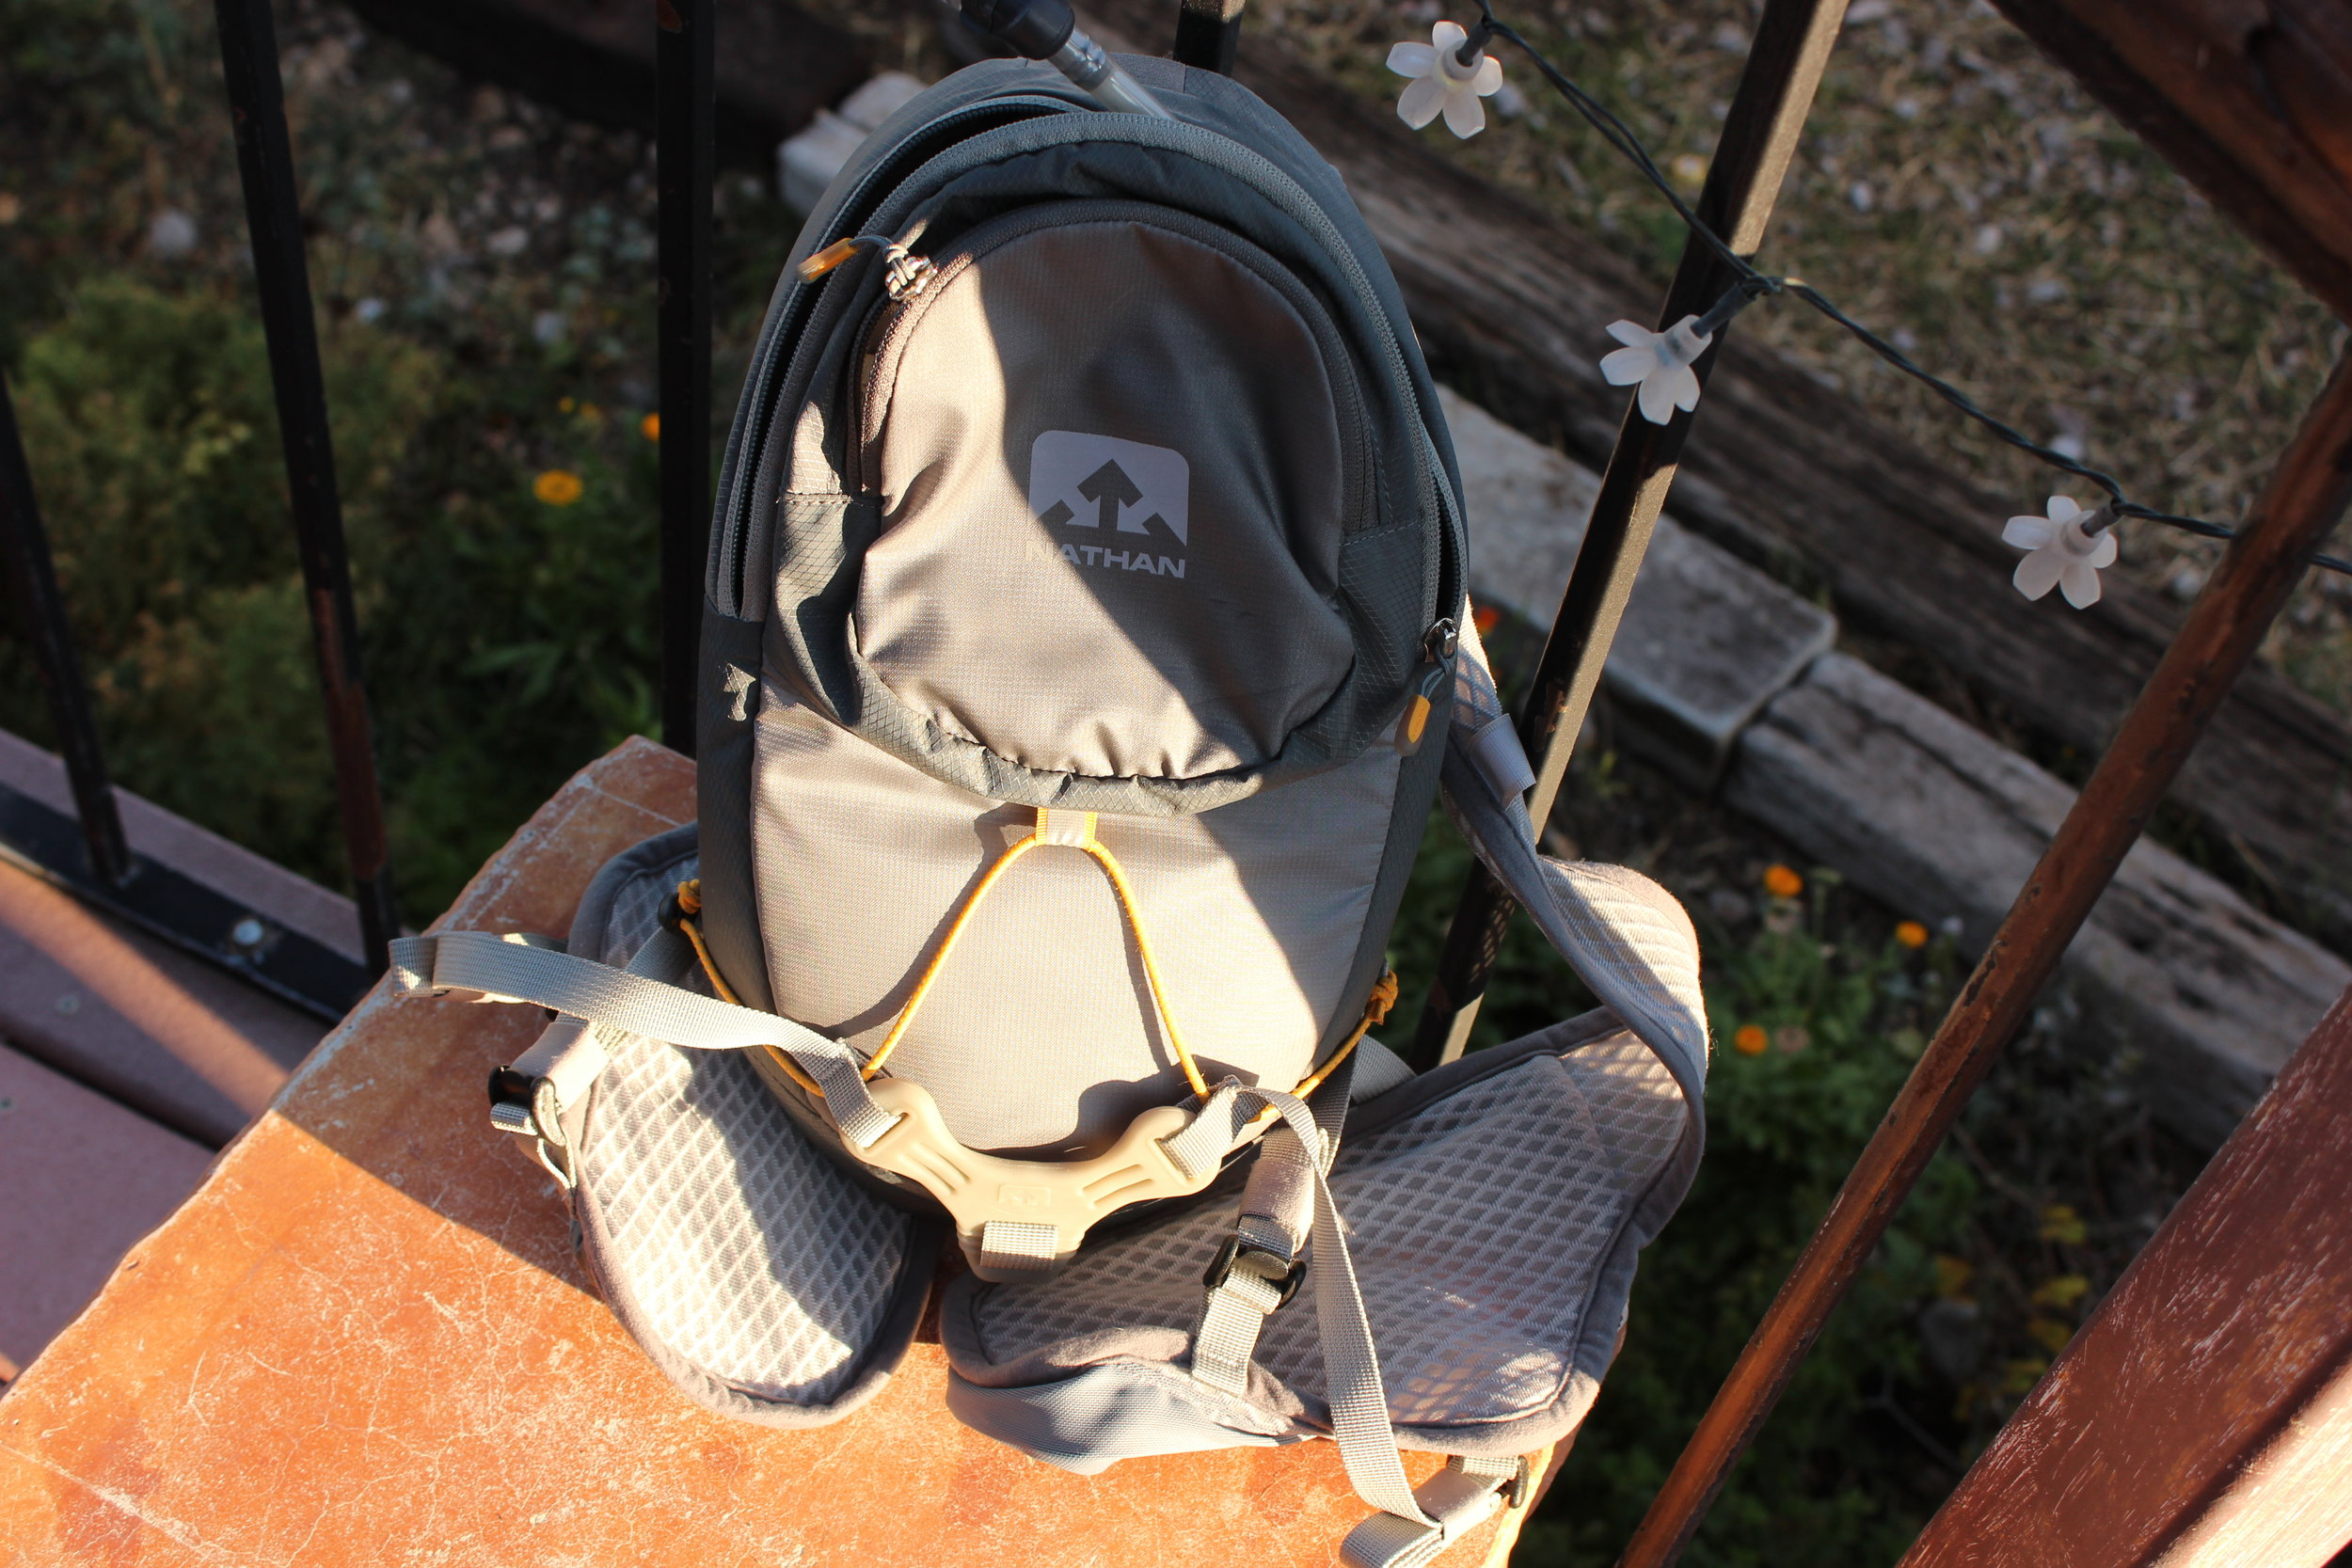 This is my  Nathan water bladder.  It doubles as a VERY small backpack, too. But I'm keeping it in my truck, just in case. I can also easily slip this into the large backpack if I need to walk any distances. The hose sticks right out the top. It's really handy!  Note on this one : It's on the less expensive side of these hydration packs, but for what I use it for, it's perfect. This one holds 2L of water. They are still pricey, though. If you can handle carrying water bottles, that's fine.